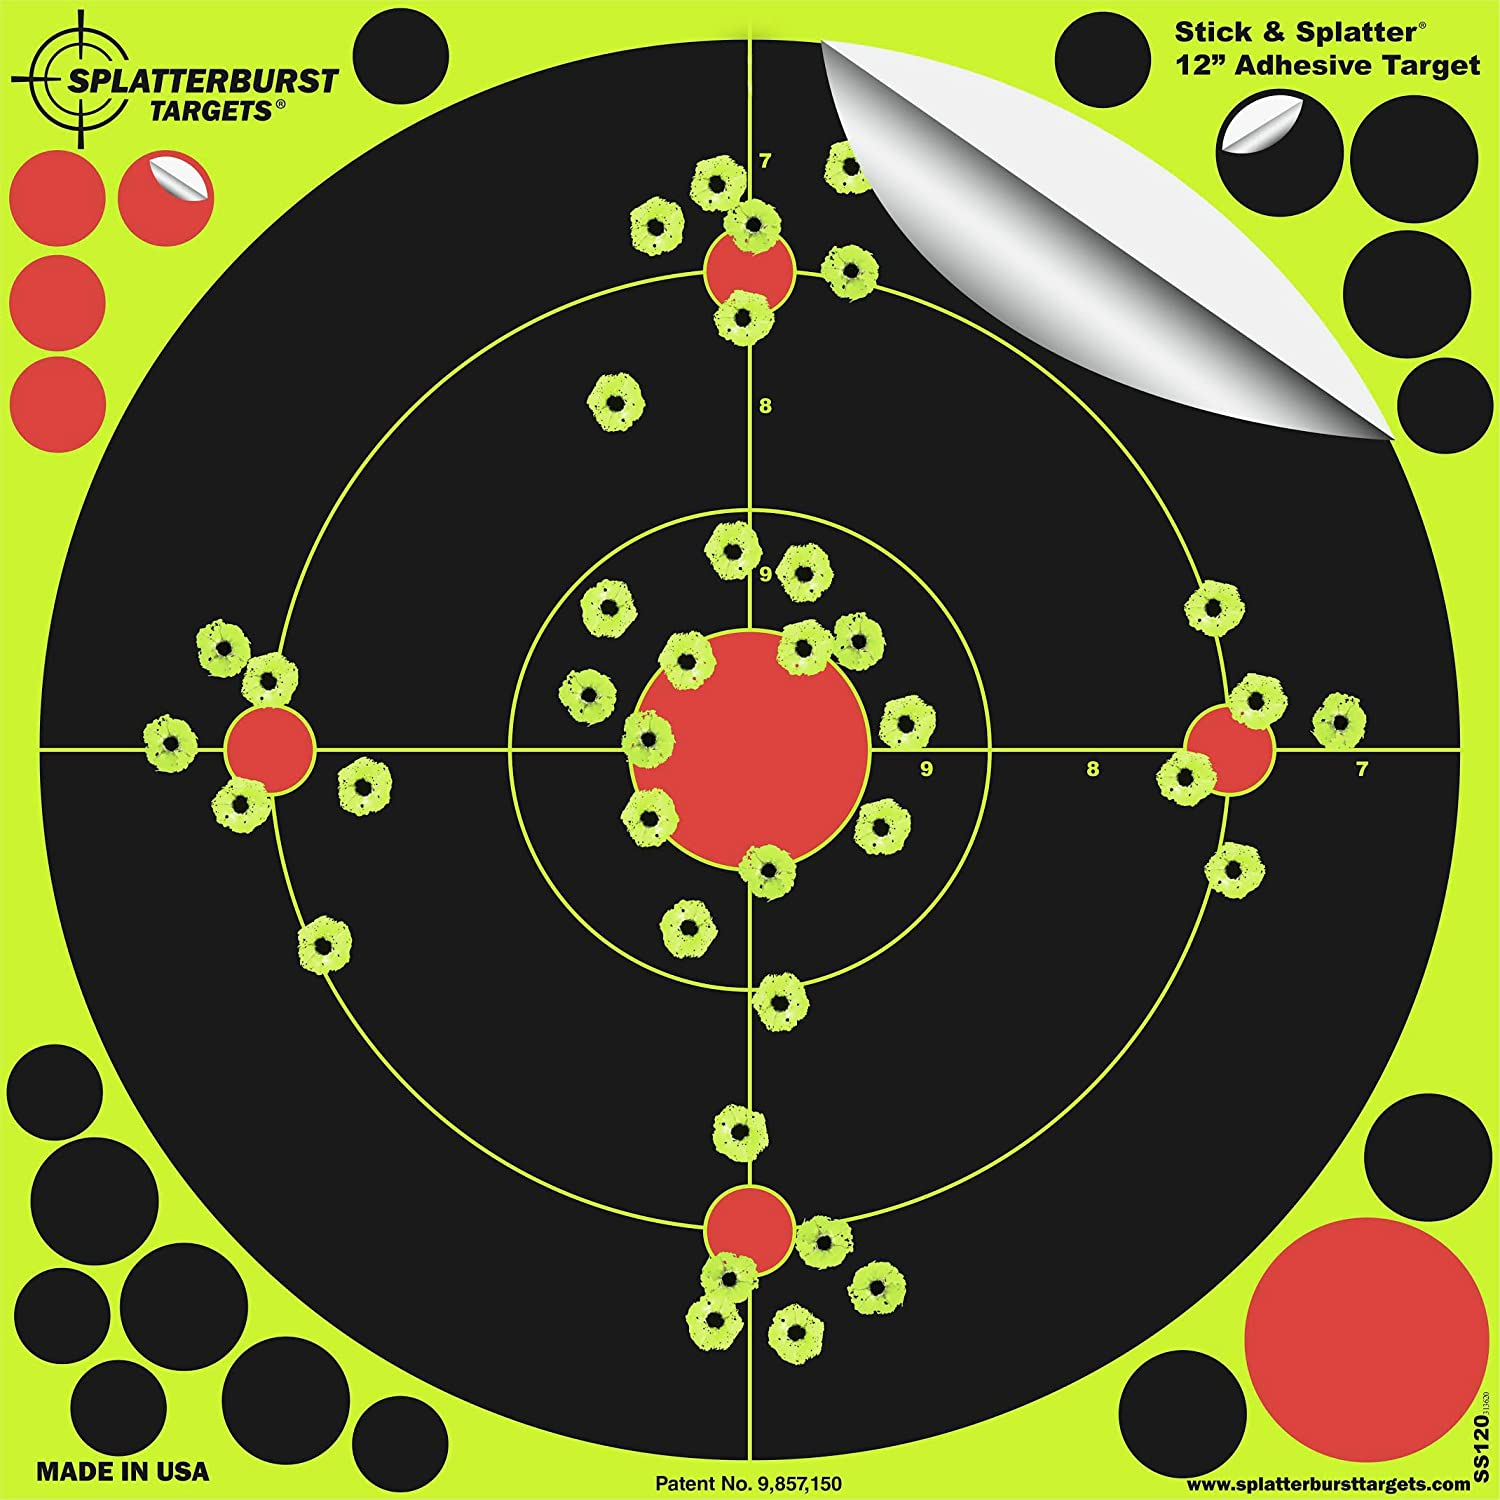 Splatterburst Targets -12 inch Stick & Splatter Reactive Self Adhesive Shooting Targets - Gun - Rifle - Pistol - Airsoft - BB Gun - Pellet Gun - Air Rifle